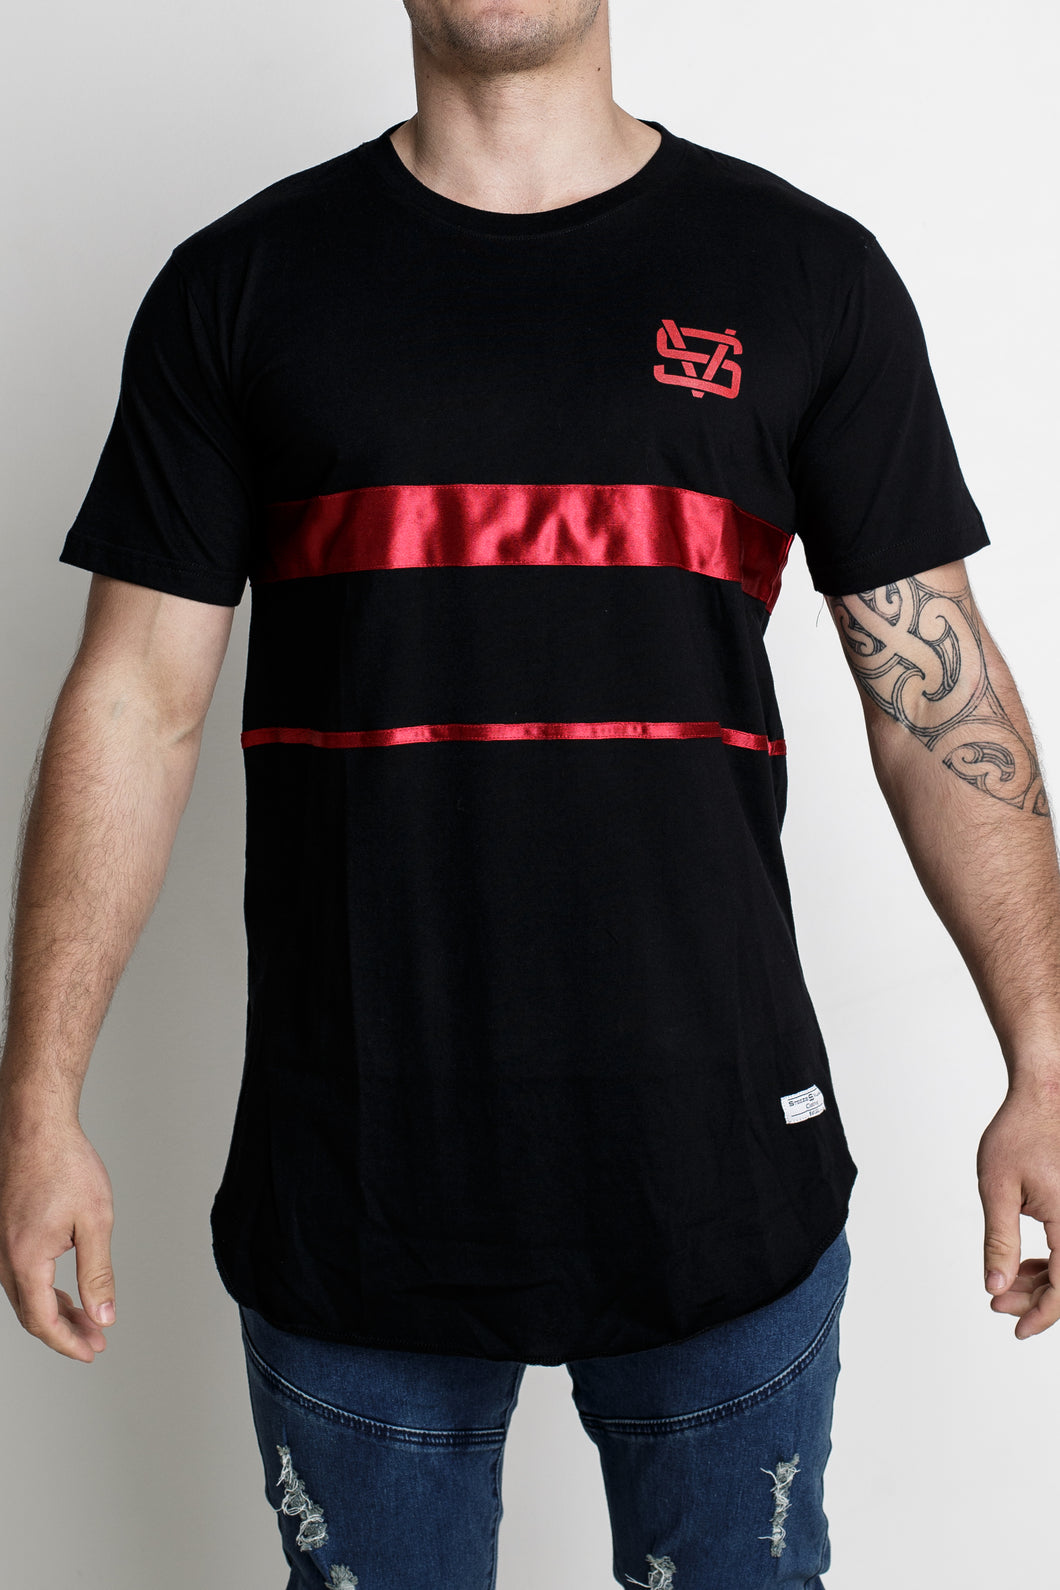 Red Band Tee - Black